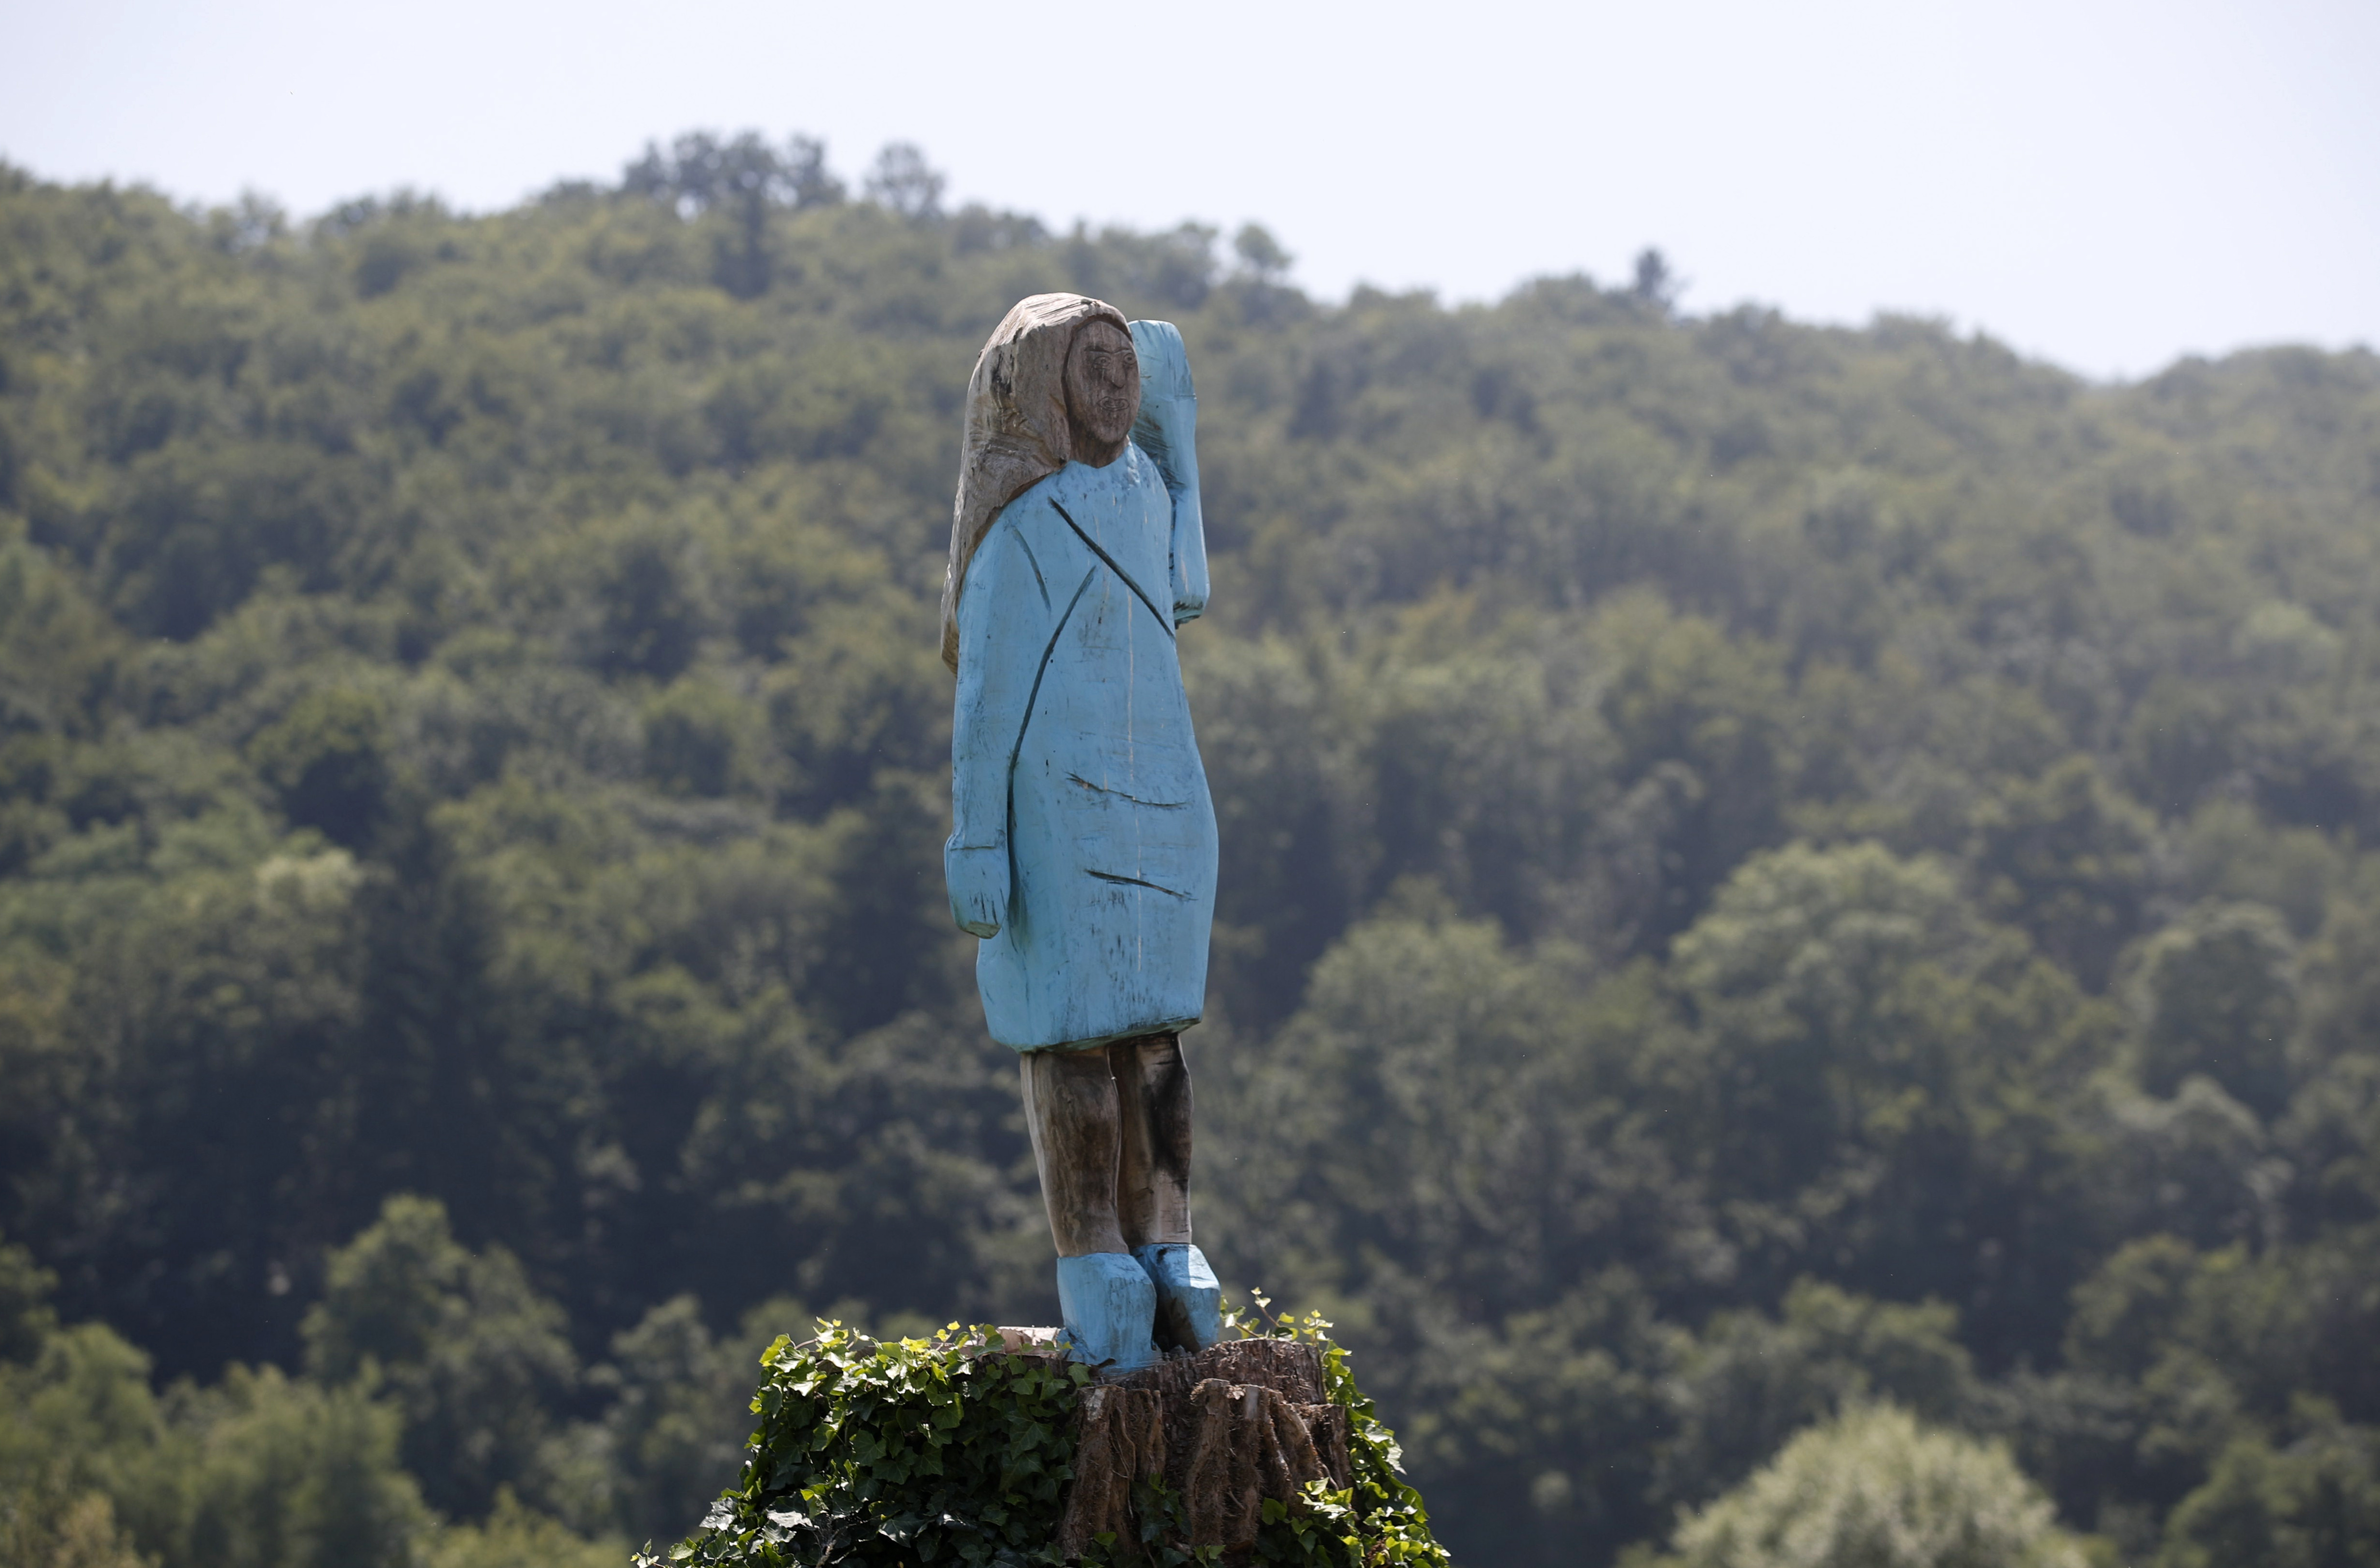 Melania Trump Depicted In Wooden Statue In Native Slovenia Wkrn News 2